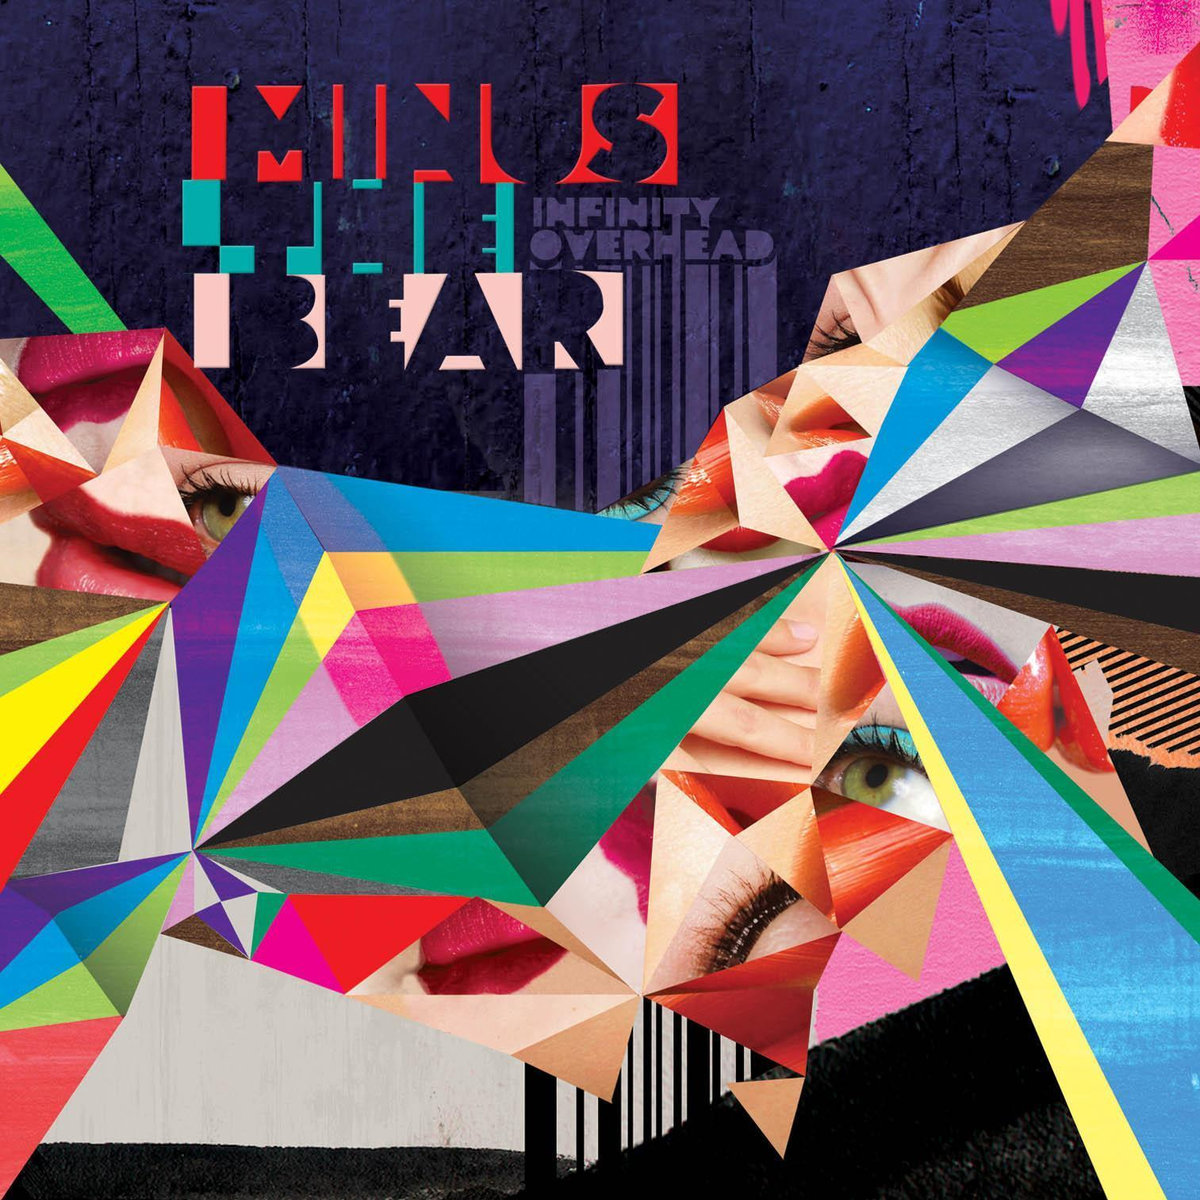 MINUS THE BEAR Infinity Overhead - Vinyl LP (clear)